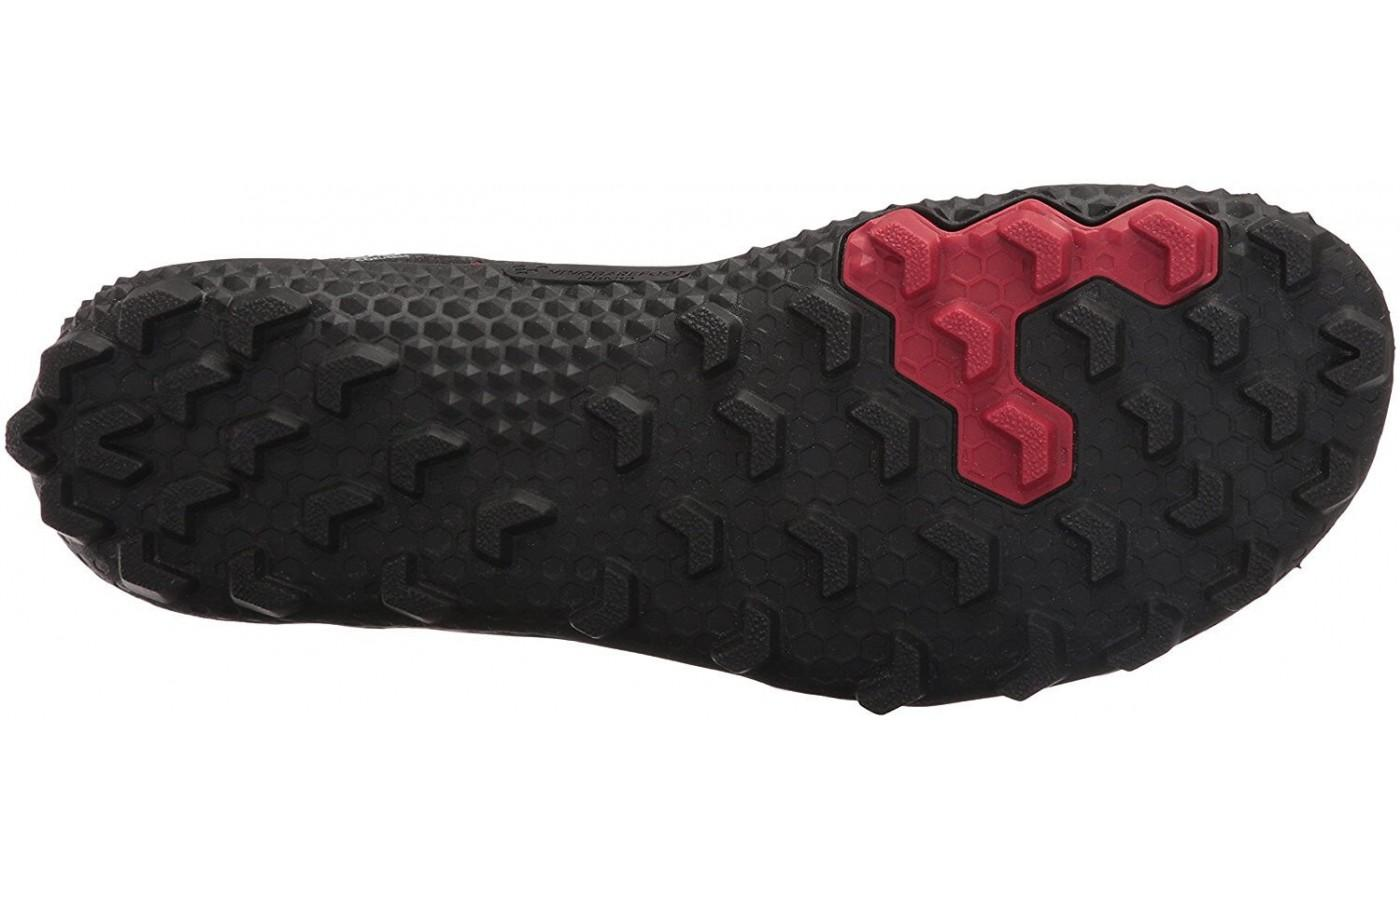 The outsole uses Vivobarefoot's Pro 5 which is a puncture proof rubber.